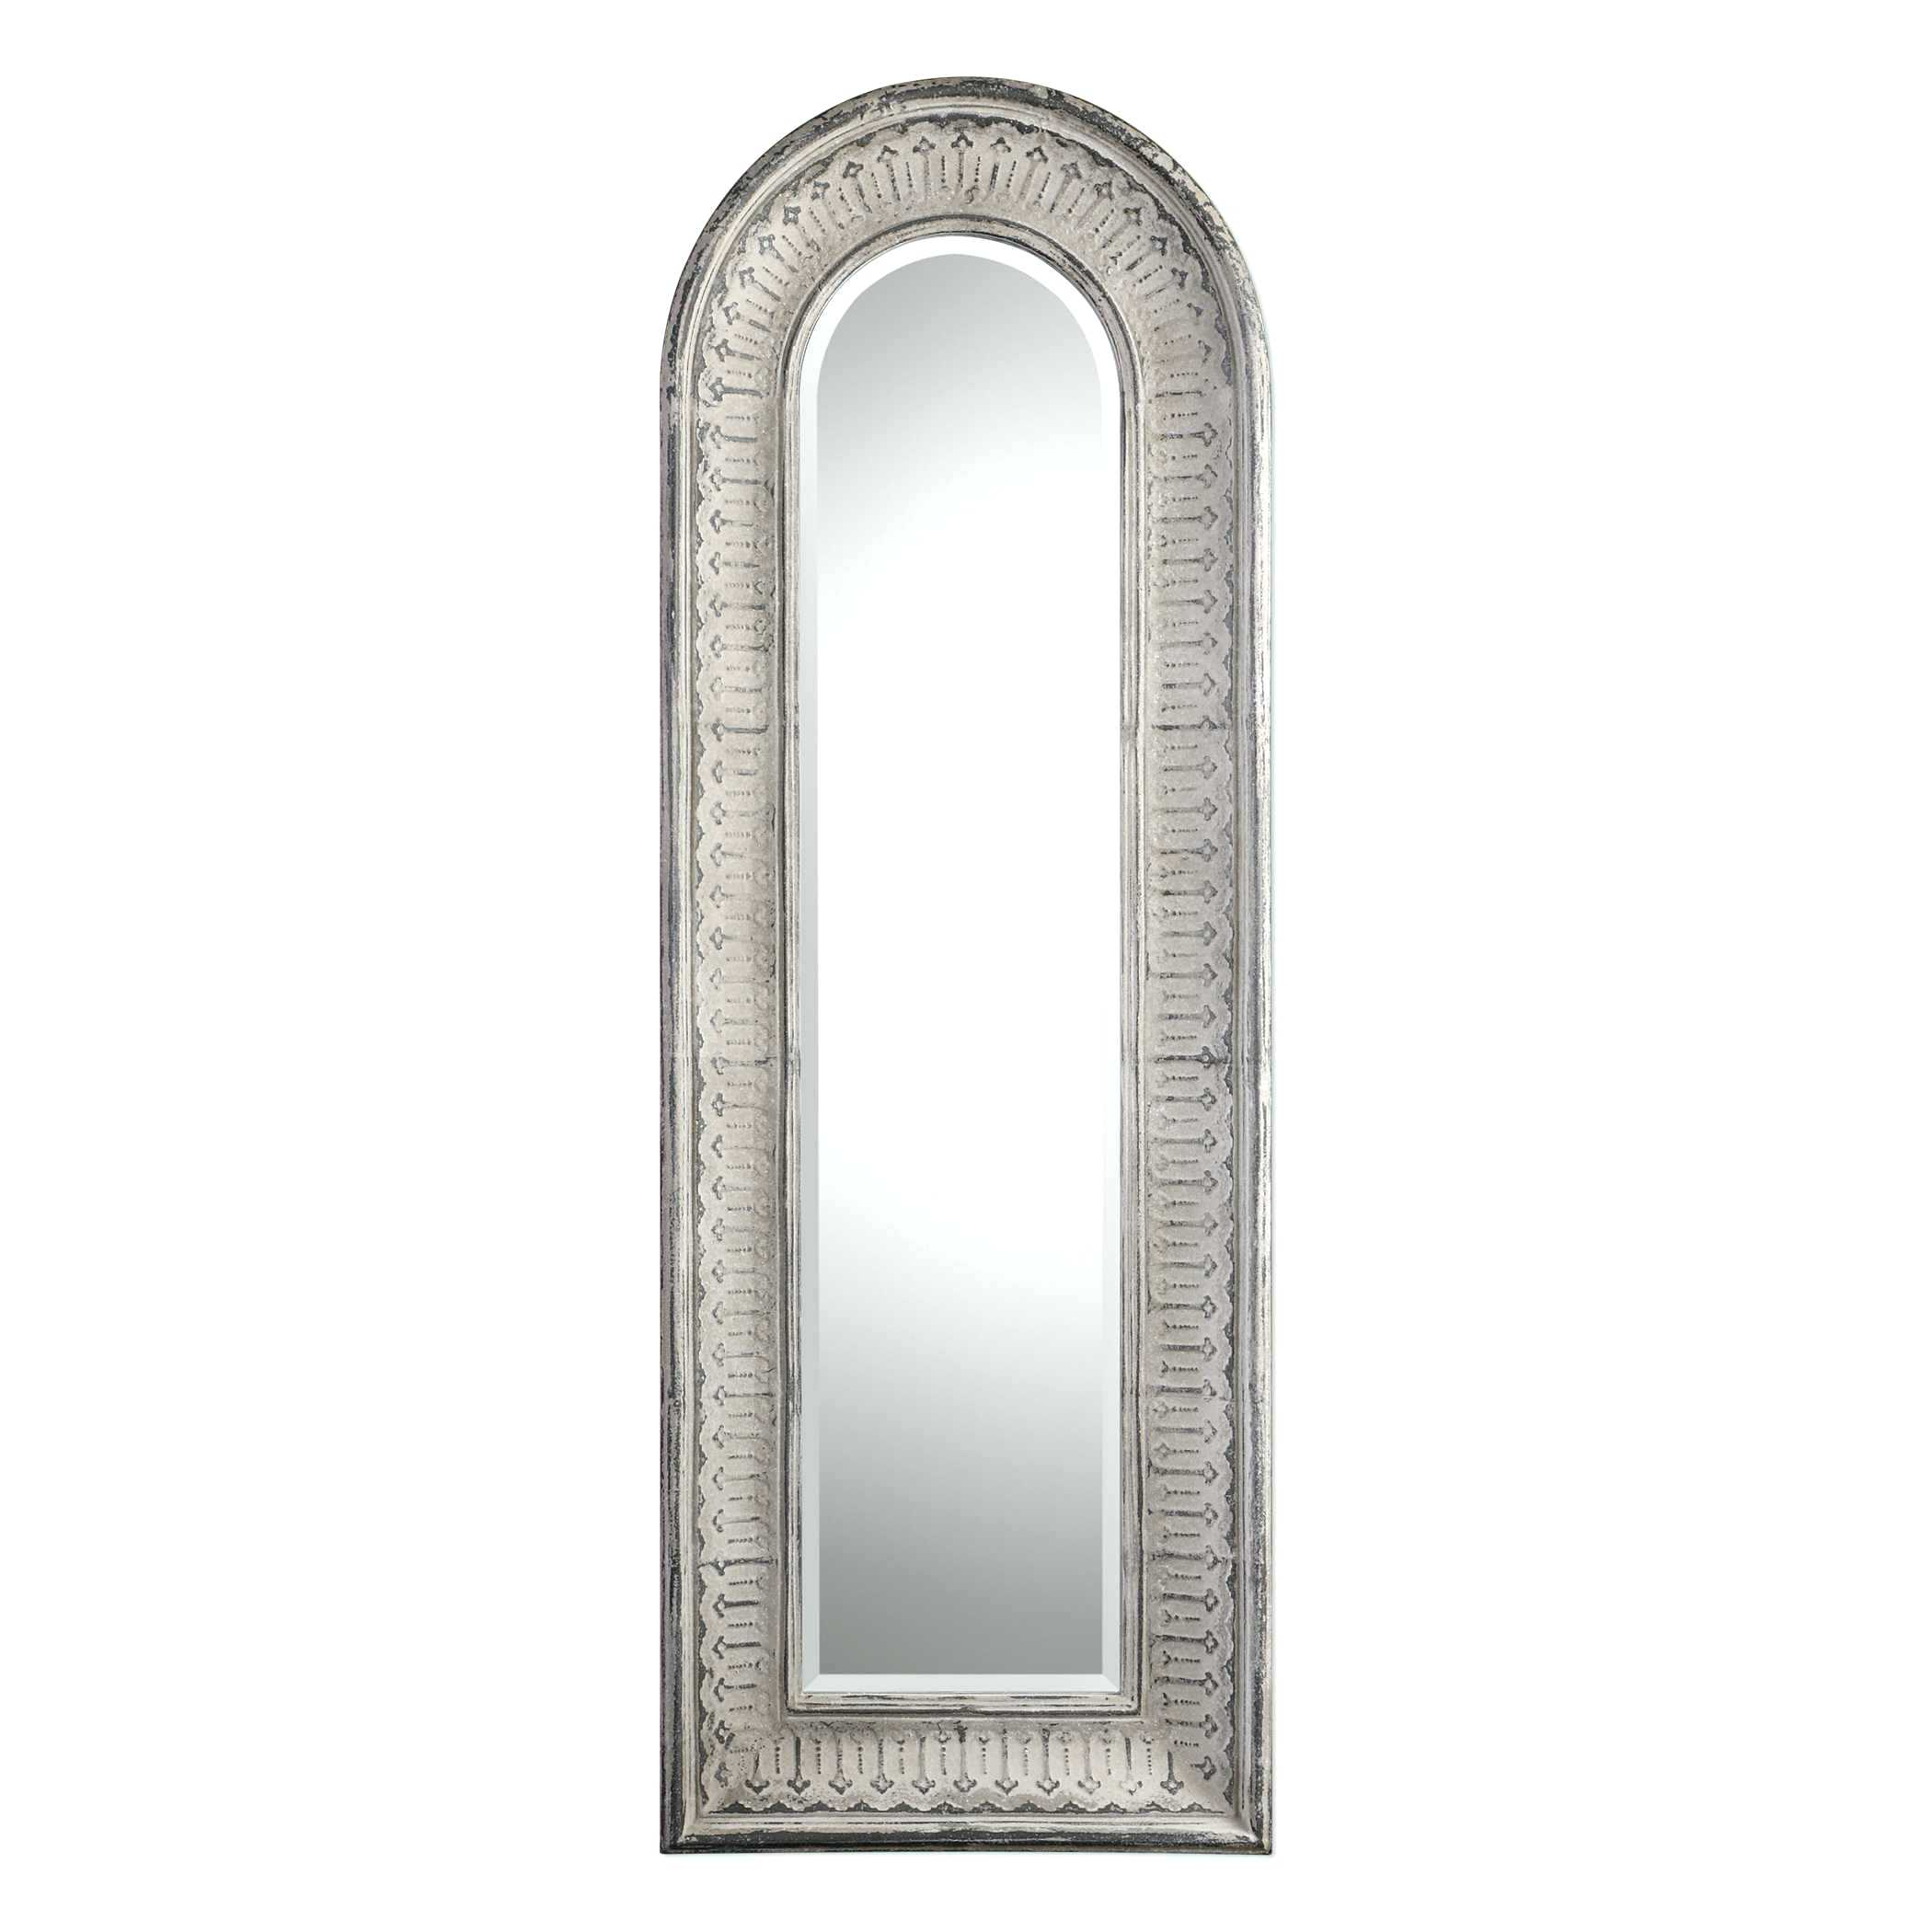 Large Frameless Wall Mirrors Throughout Most Current Luxury Frameless Extra Large 28 Oval Wall Mirror X – Jibudetese.co (Gallery 19 of 20)